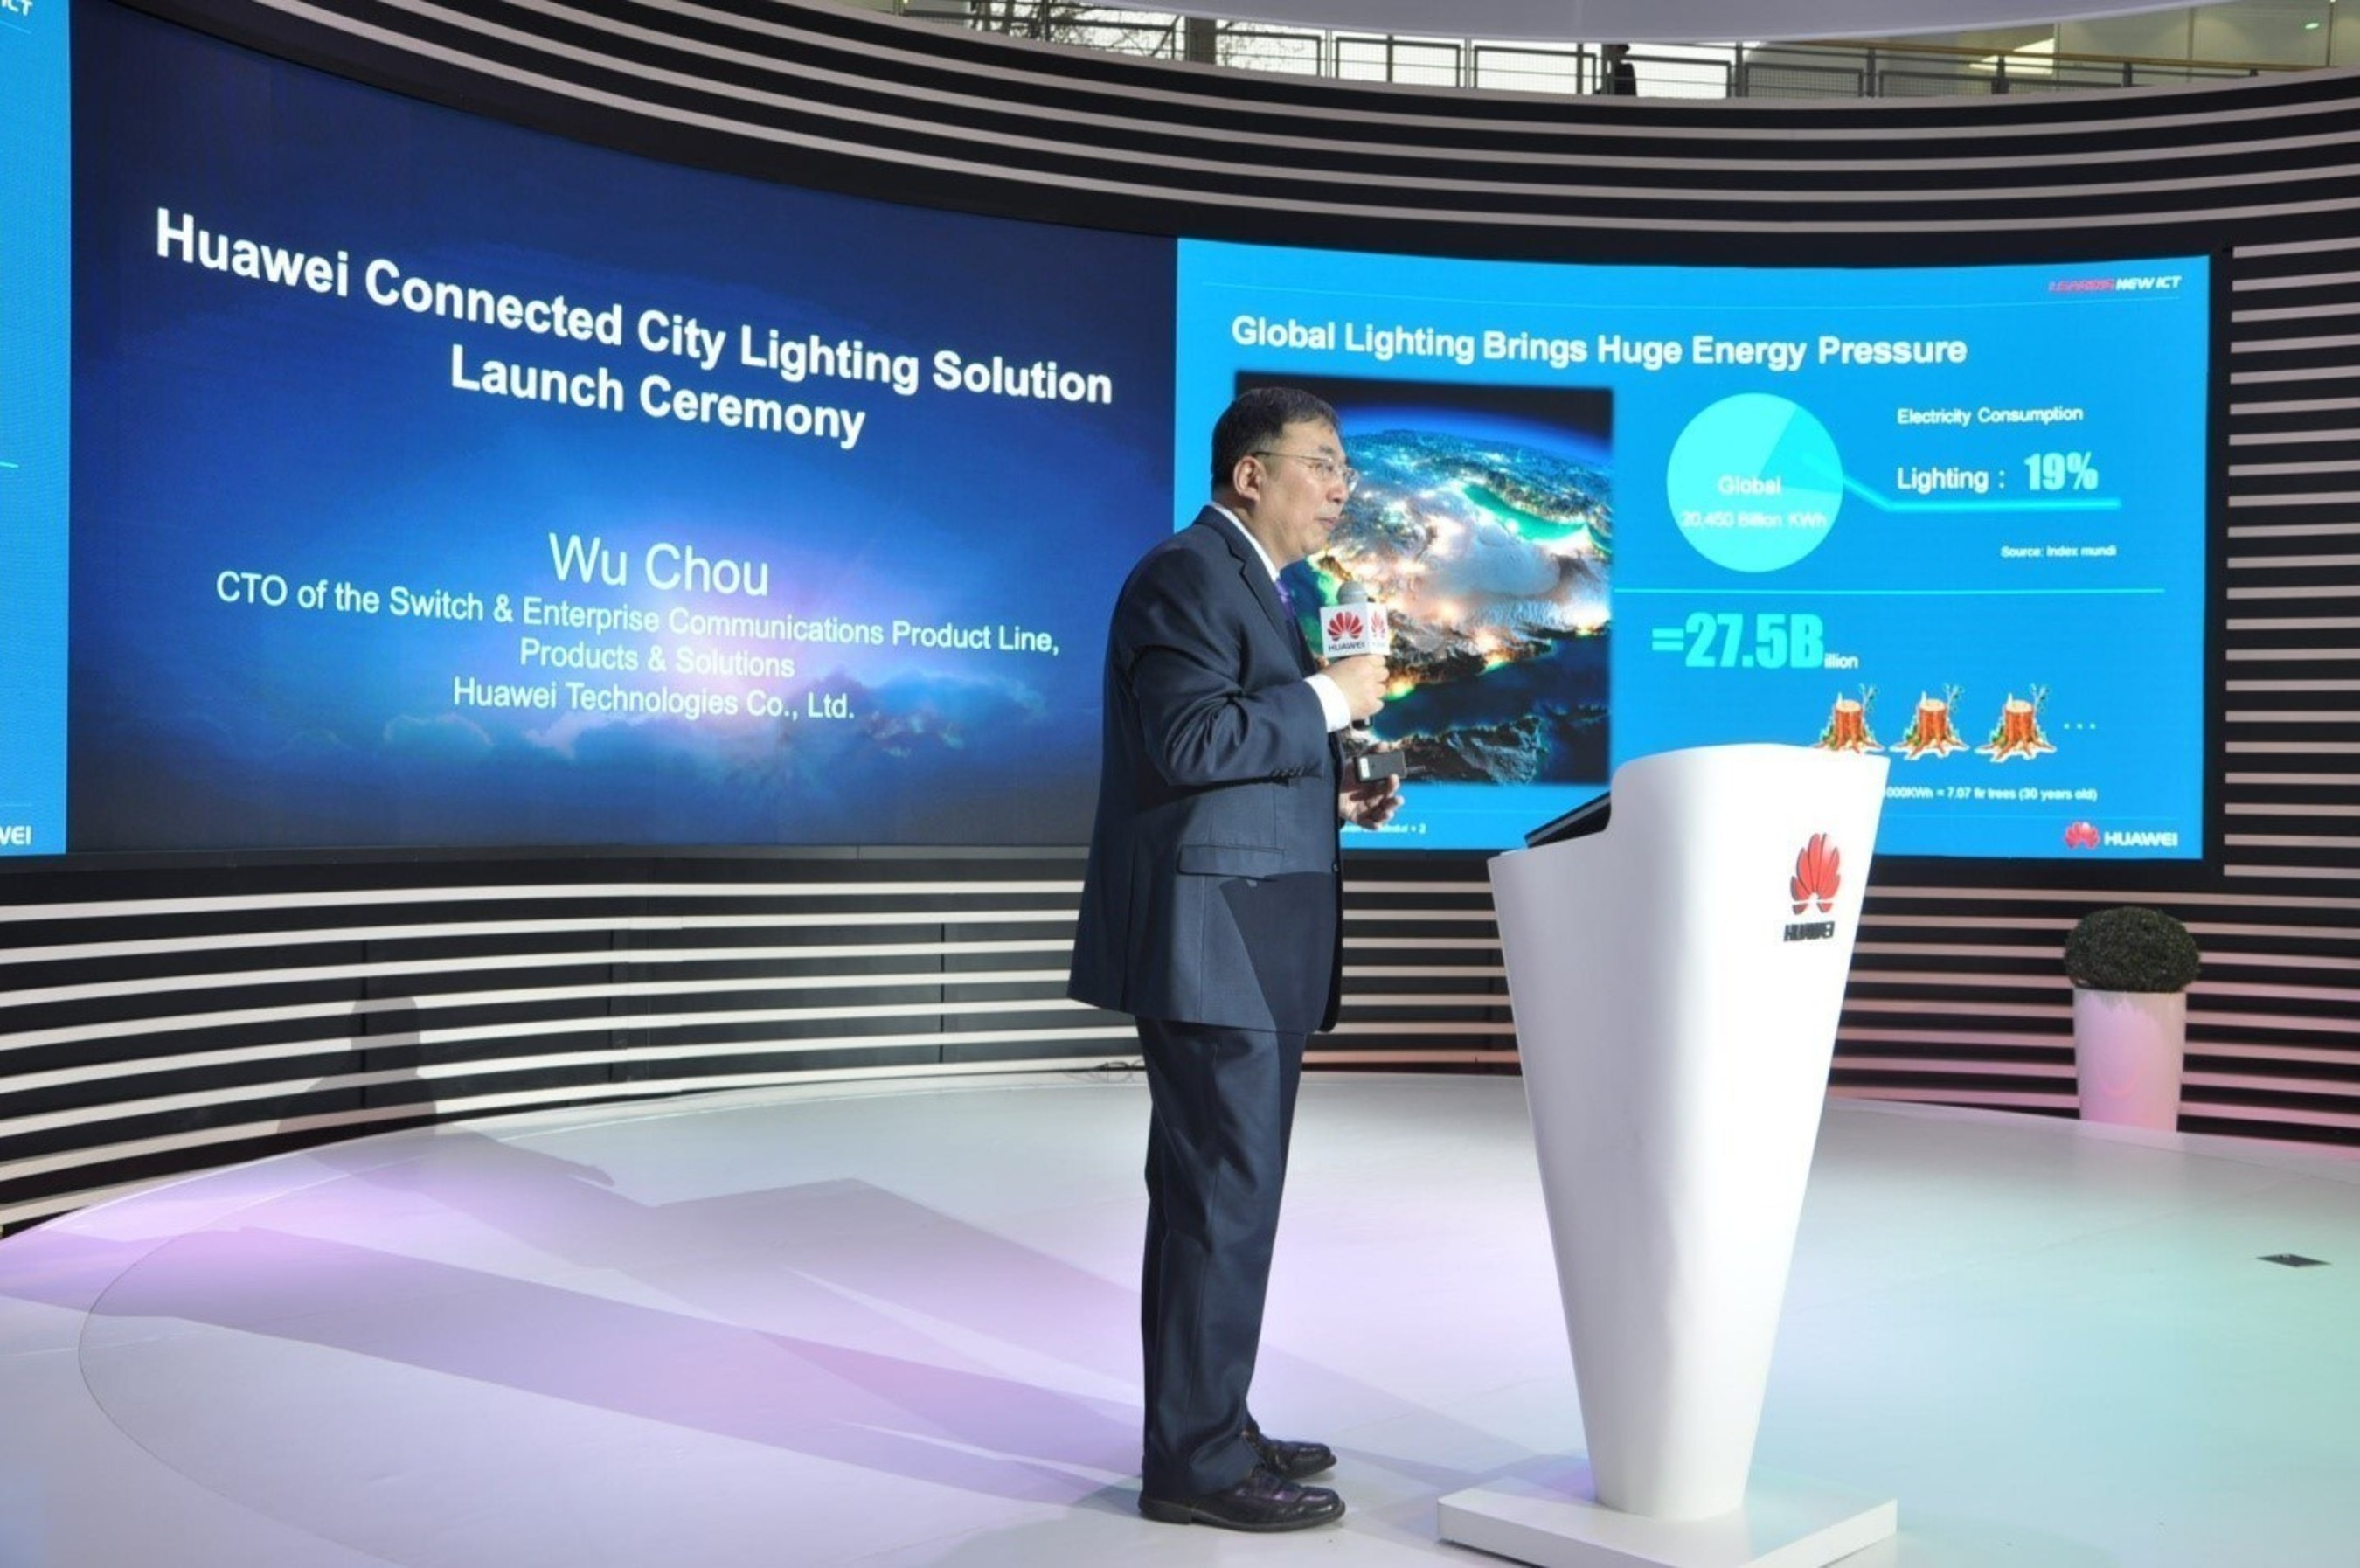 Wu Chou, CTO of Huawei Switch and Enterprise Communications Product Line, debuted the solution.